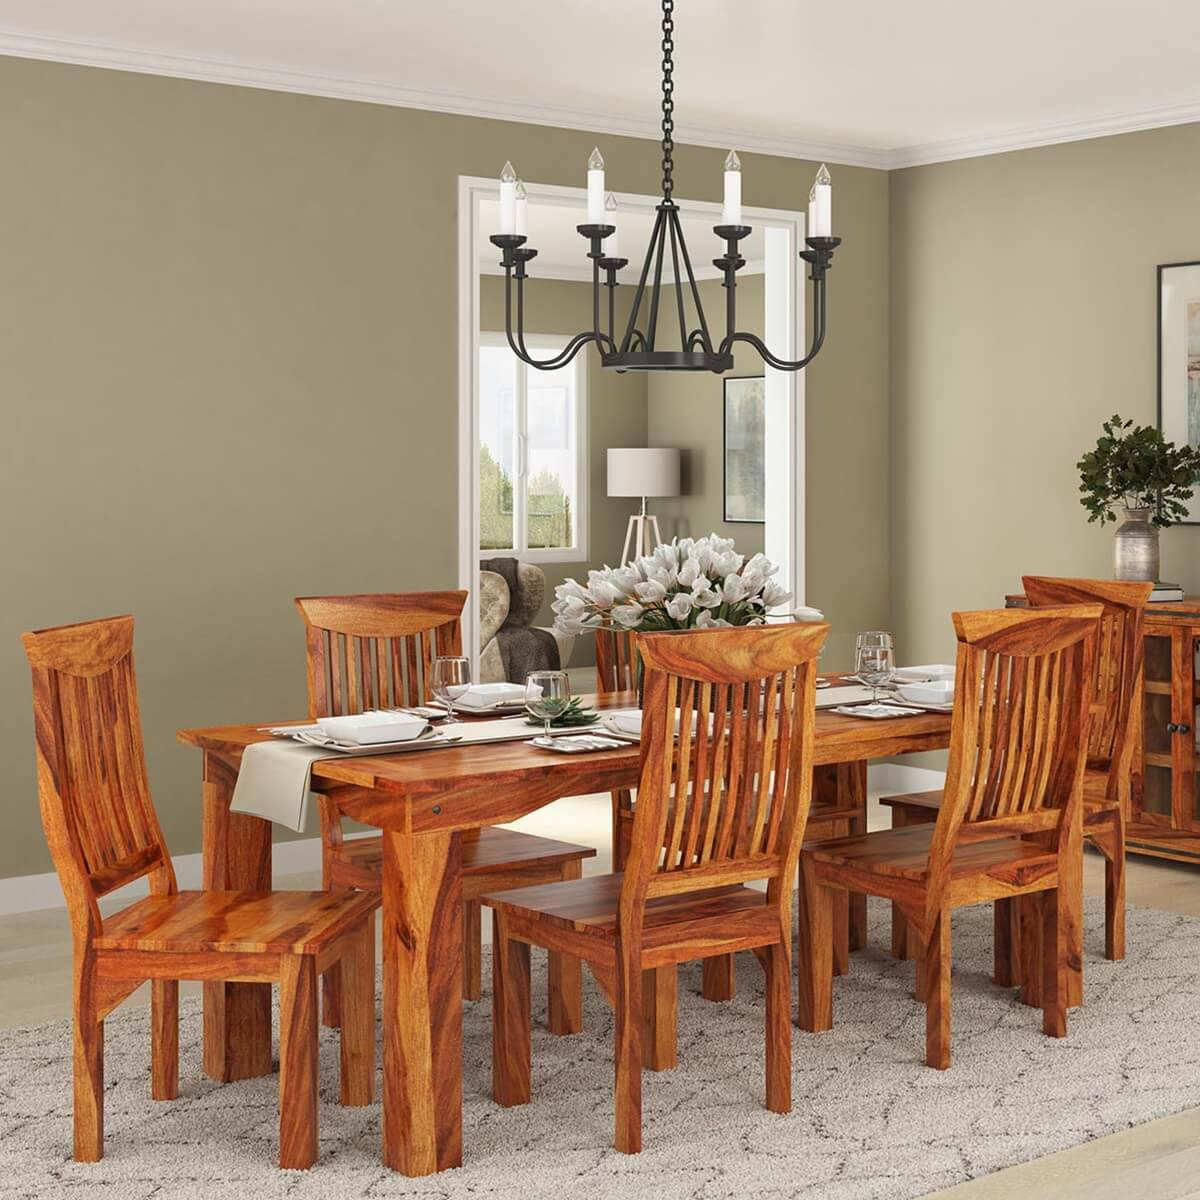 Oak Wood Table And Chairs: Idaho Modern Rustic Solid Wood Dining Table & Chair Set